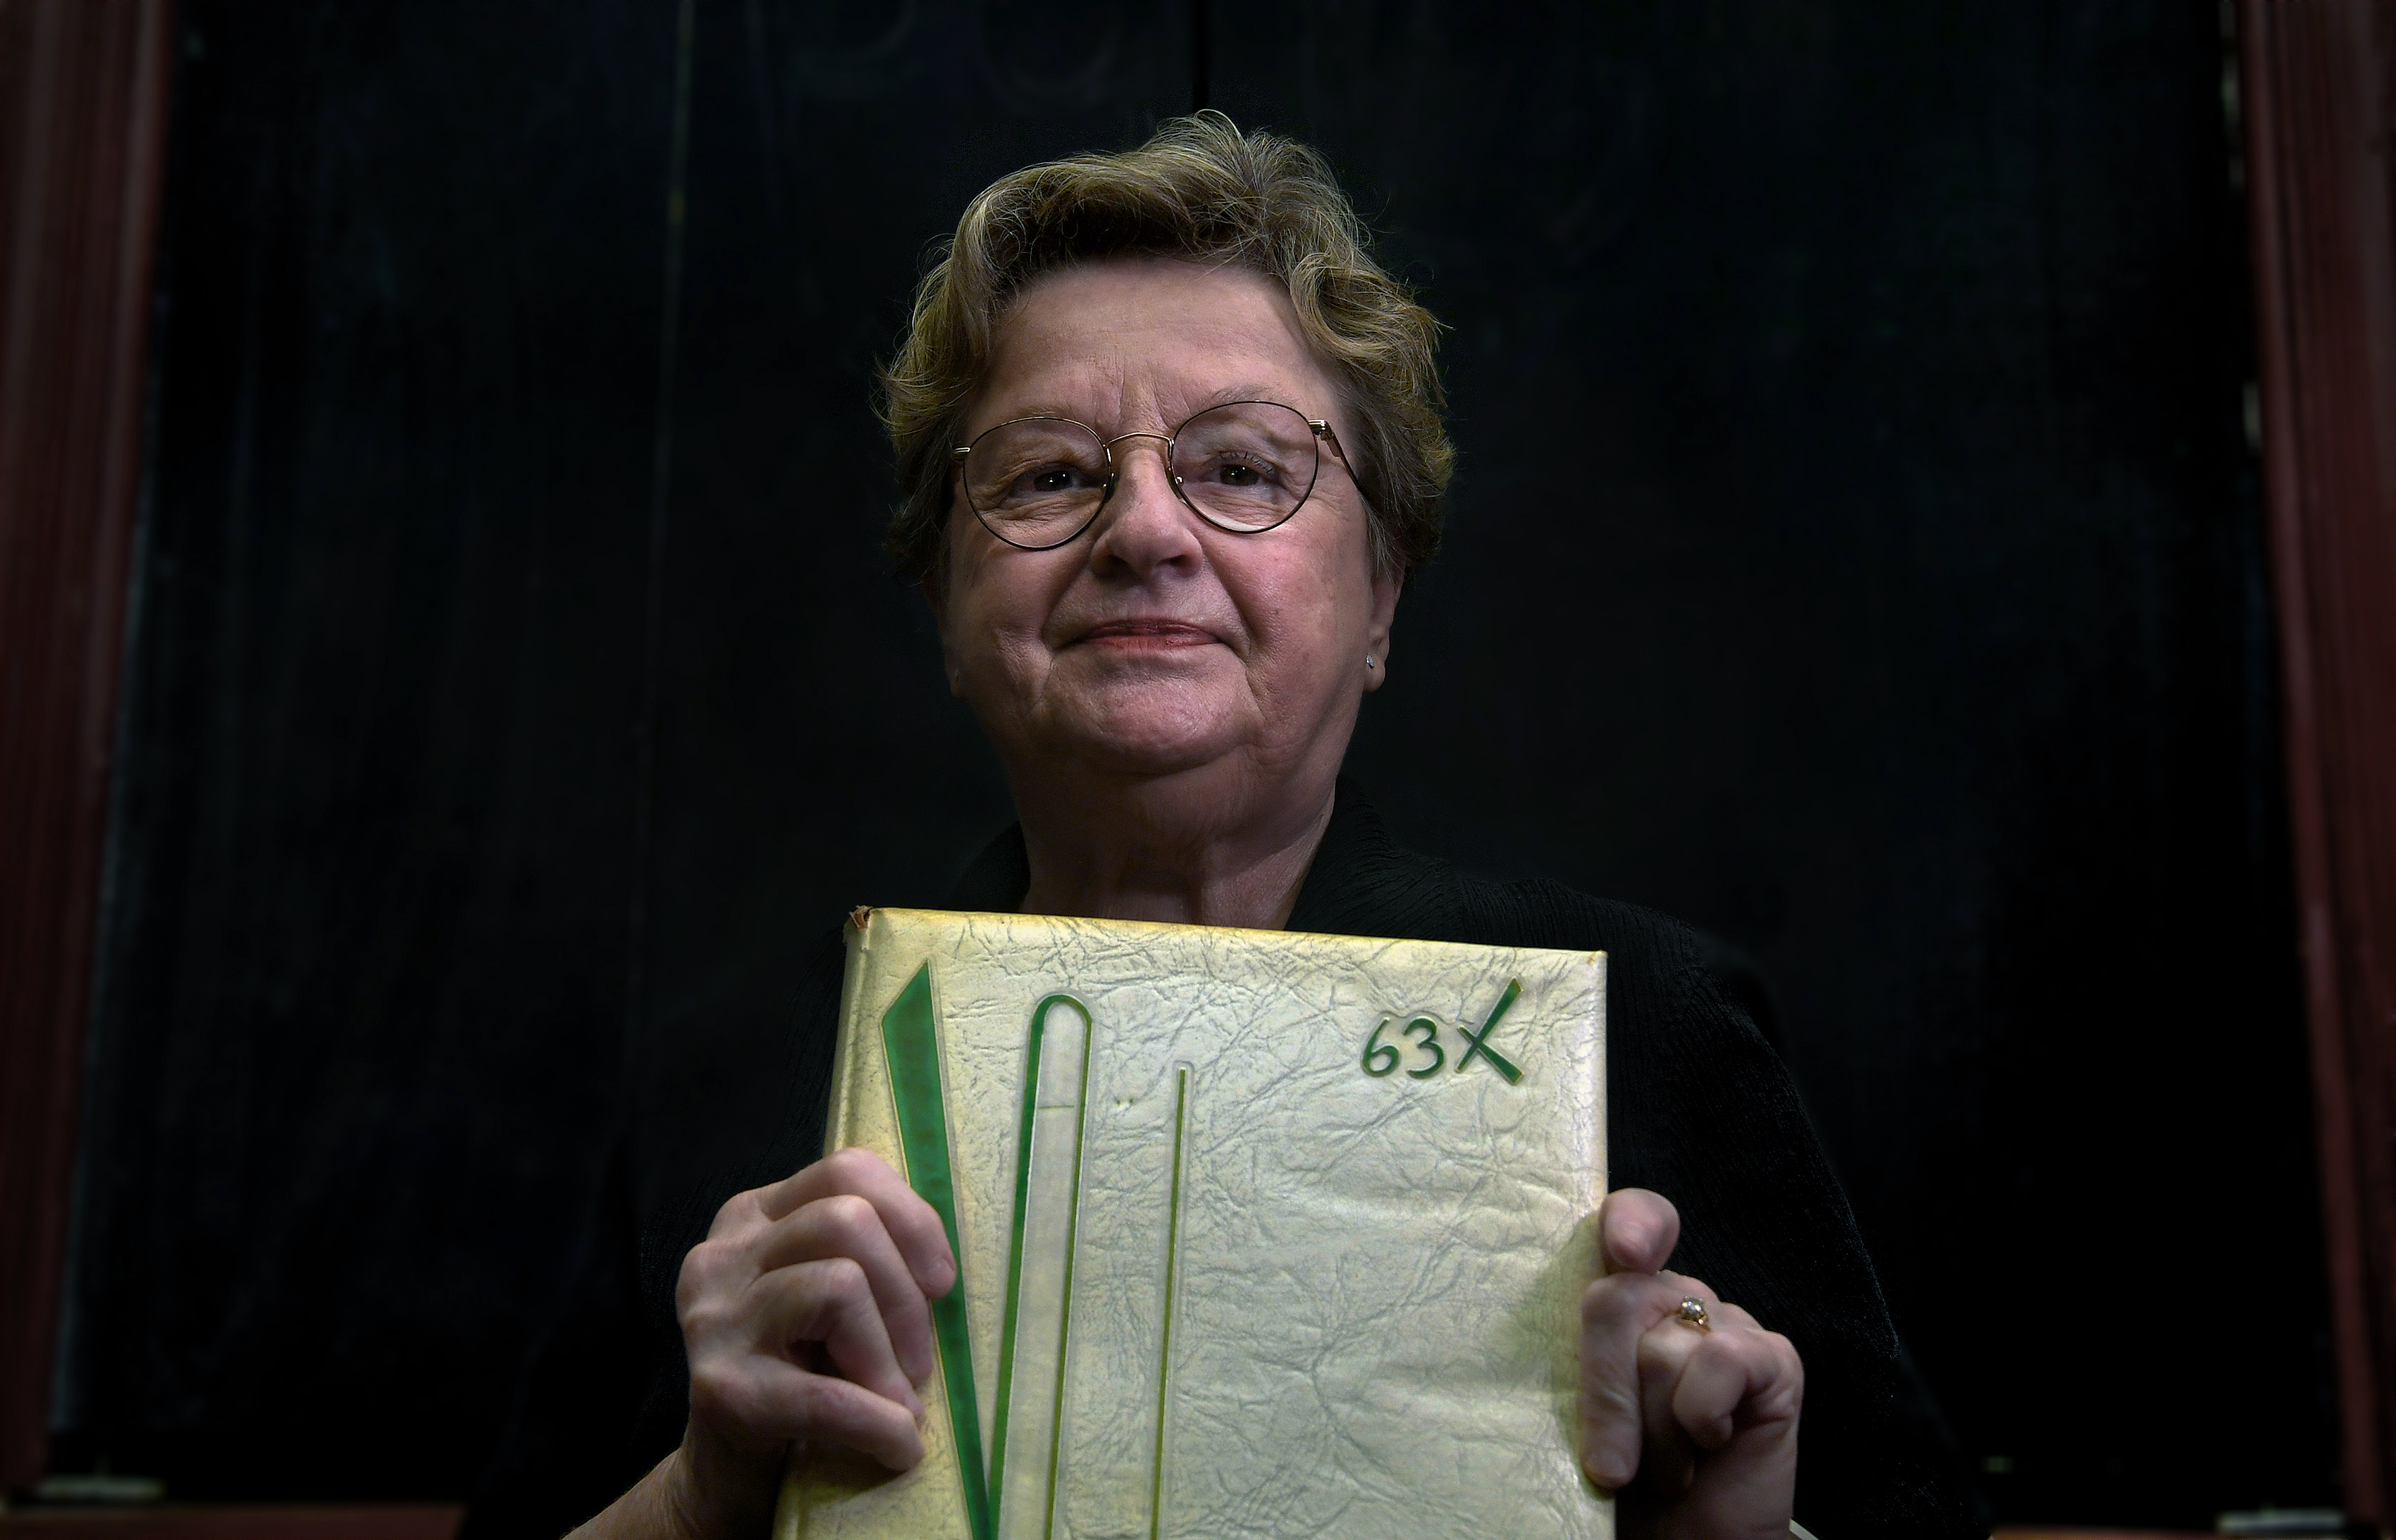 Joan Levin (holding her 1960 high school yearbook) was part of a large aptitude study in 1960 called Project Talent. MUST CREDIT: Washington Post photo by Michael S. Williamson